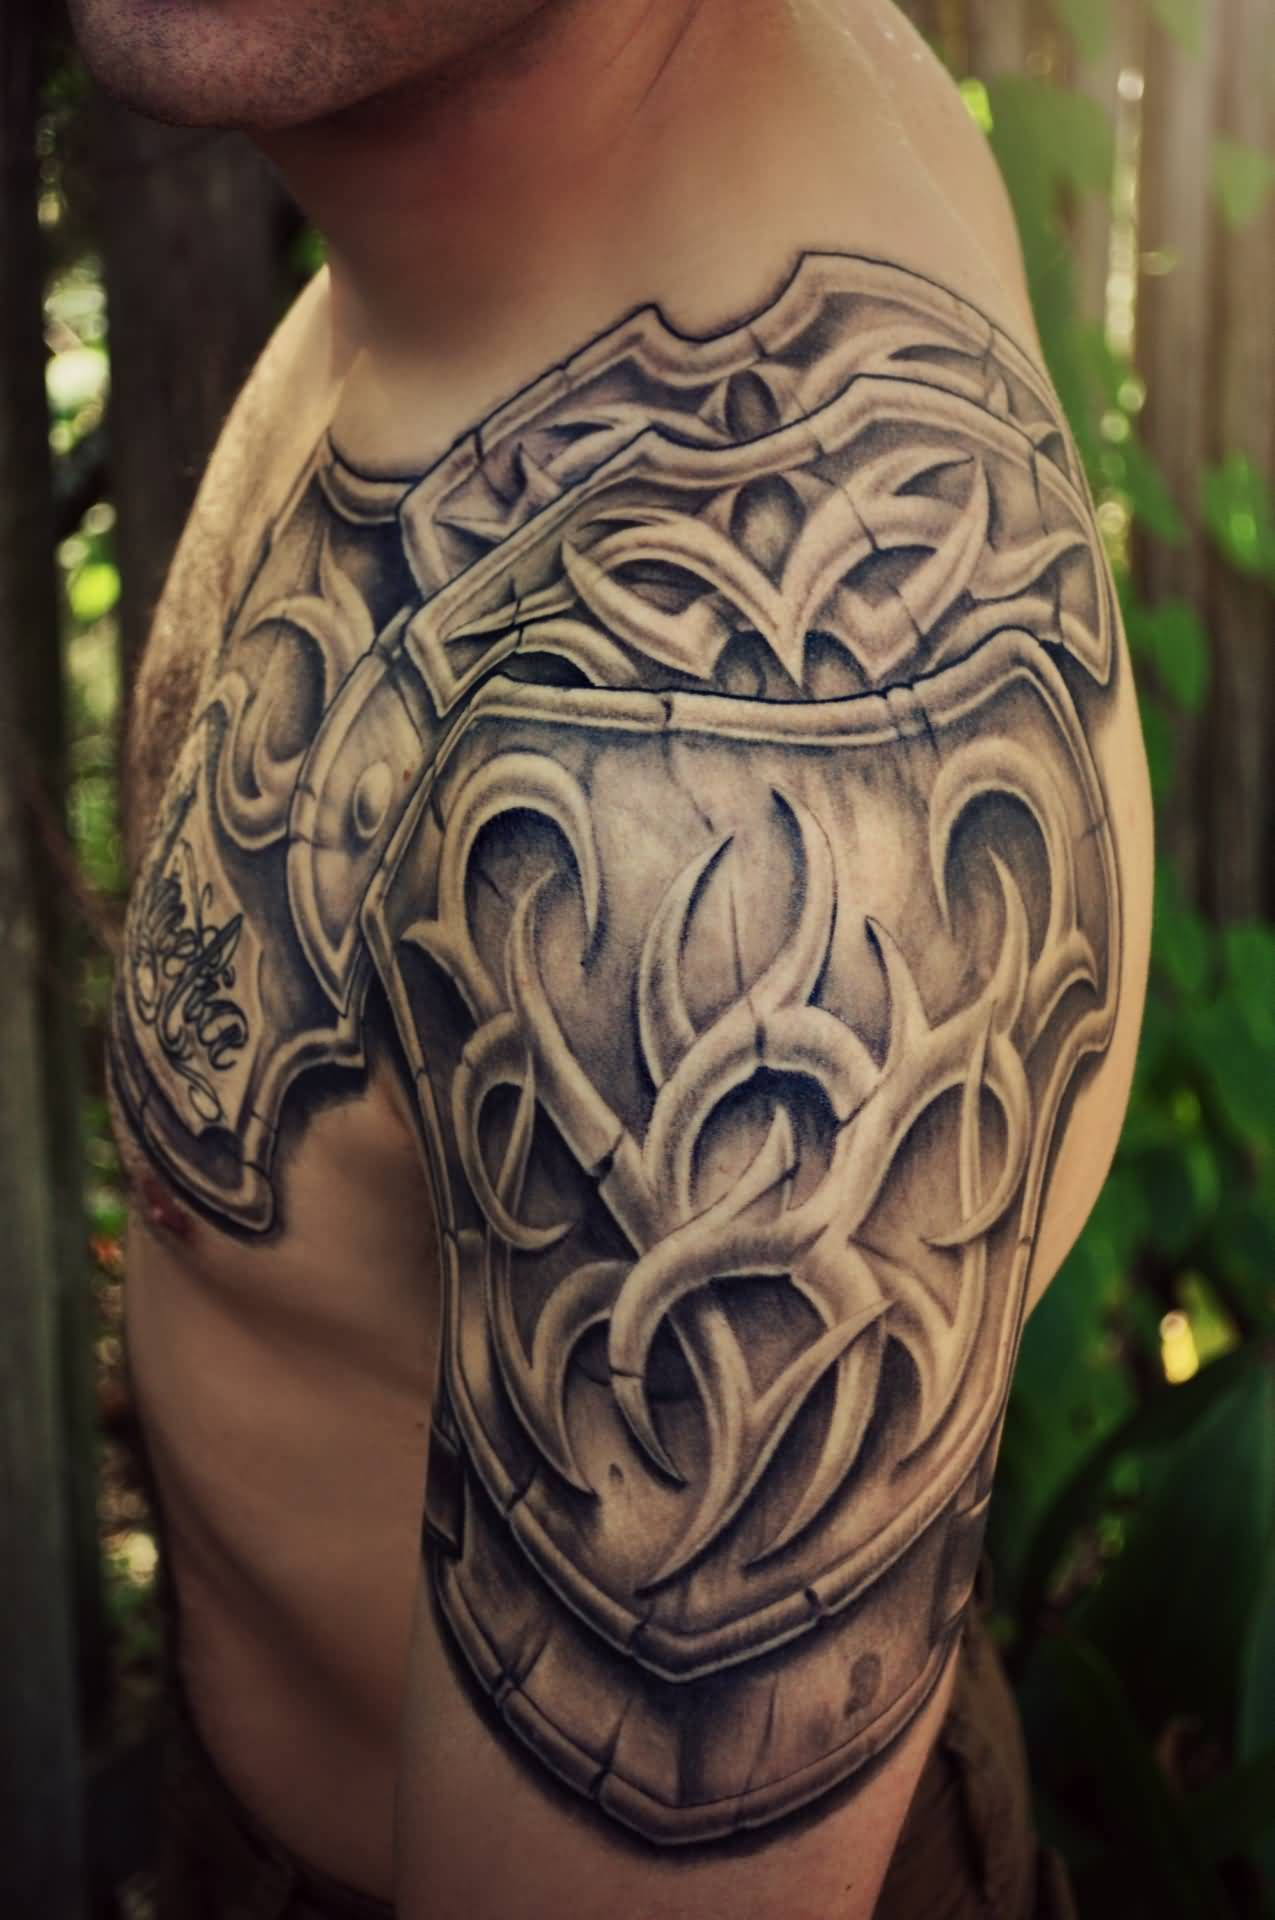 Grey Ink Shoulder Armor Tattoo For Men With Images Shoulder Armor Tattoo Armor Tattoo Tattoos